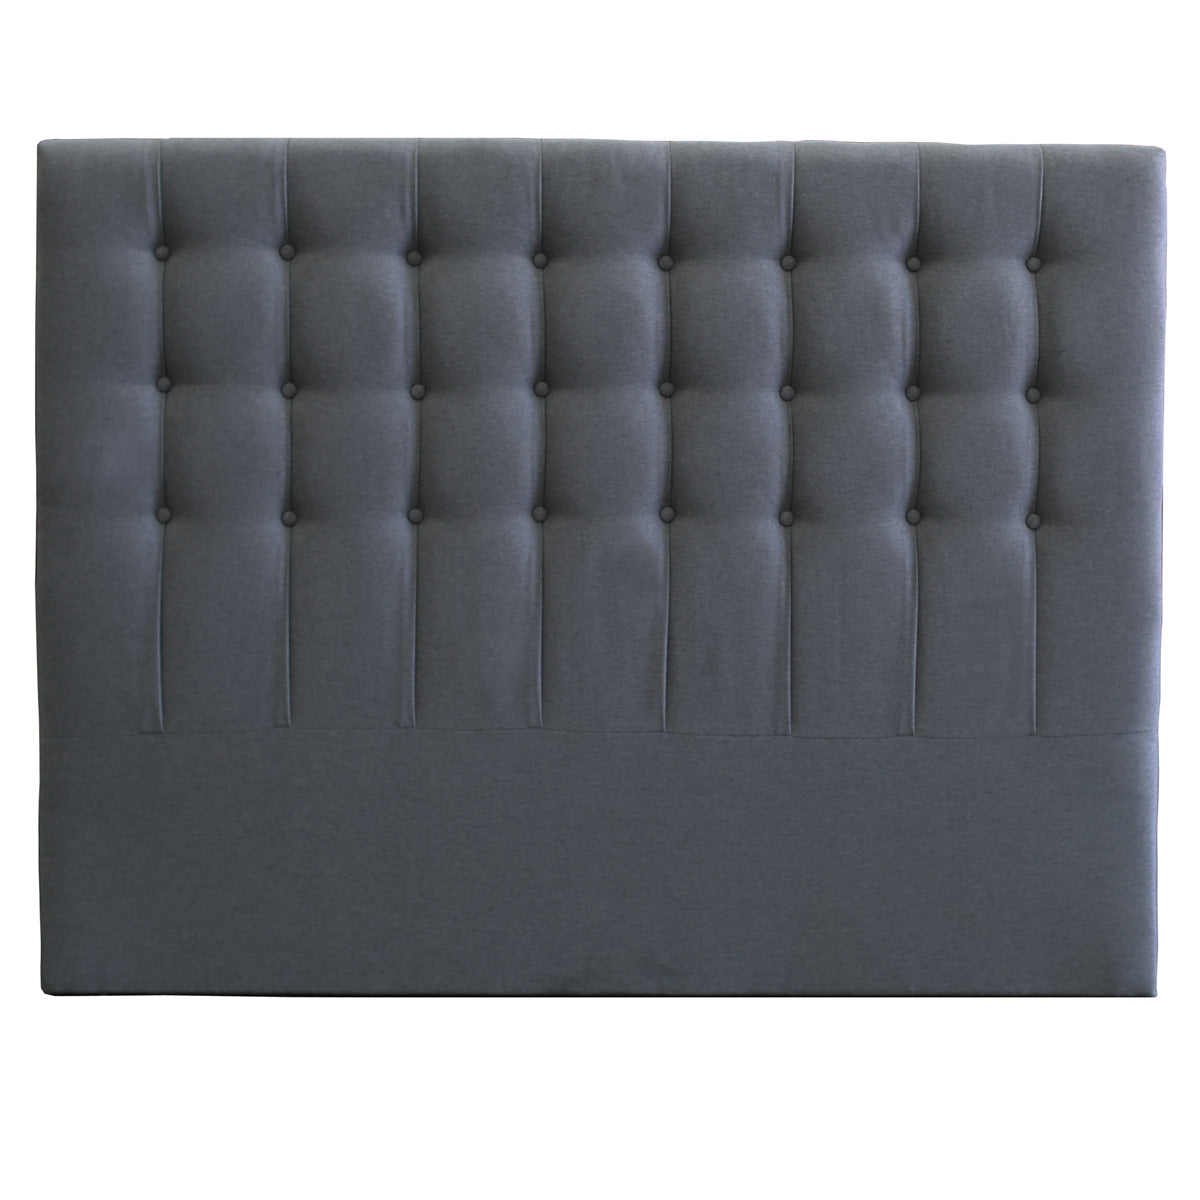 Maddison Upholstered Fabric Bed Head (Charcoal)